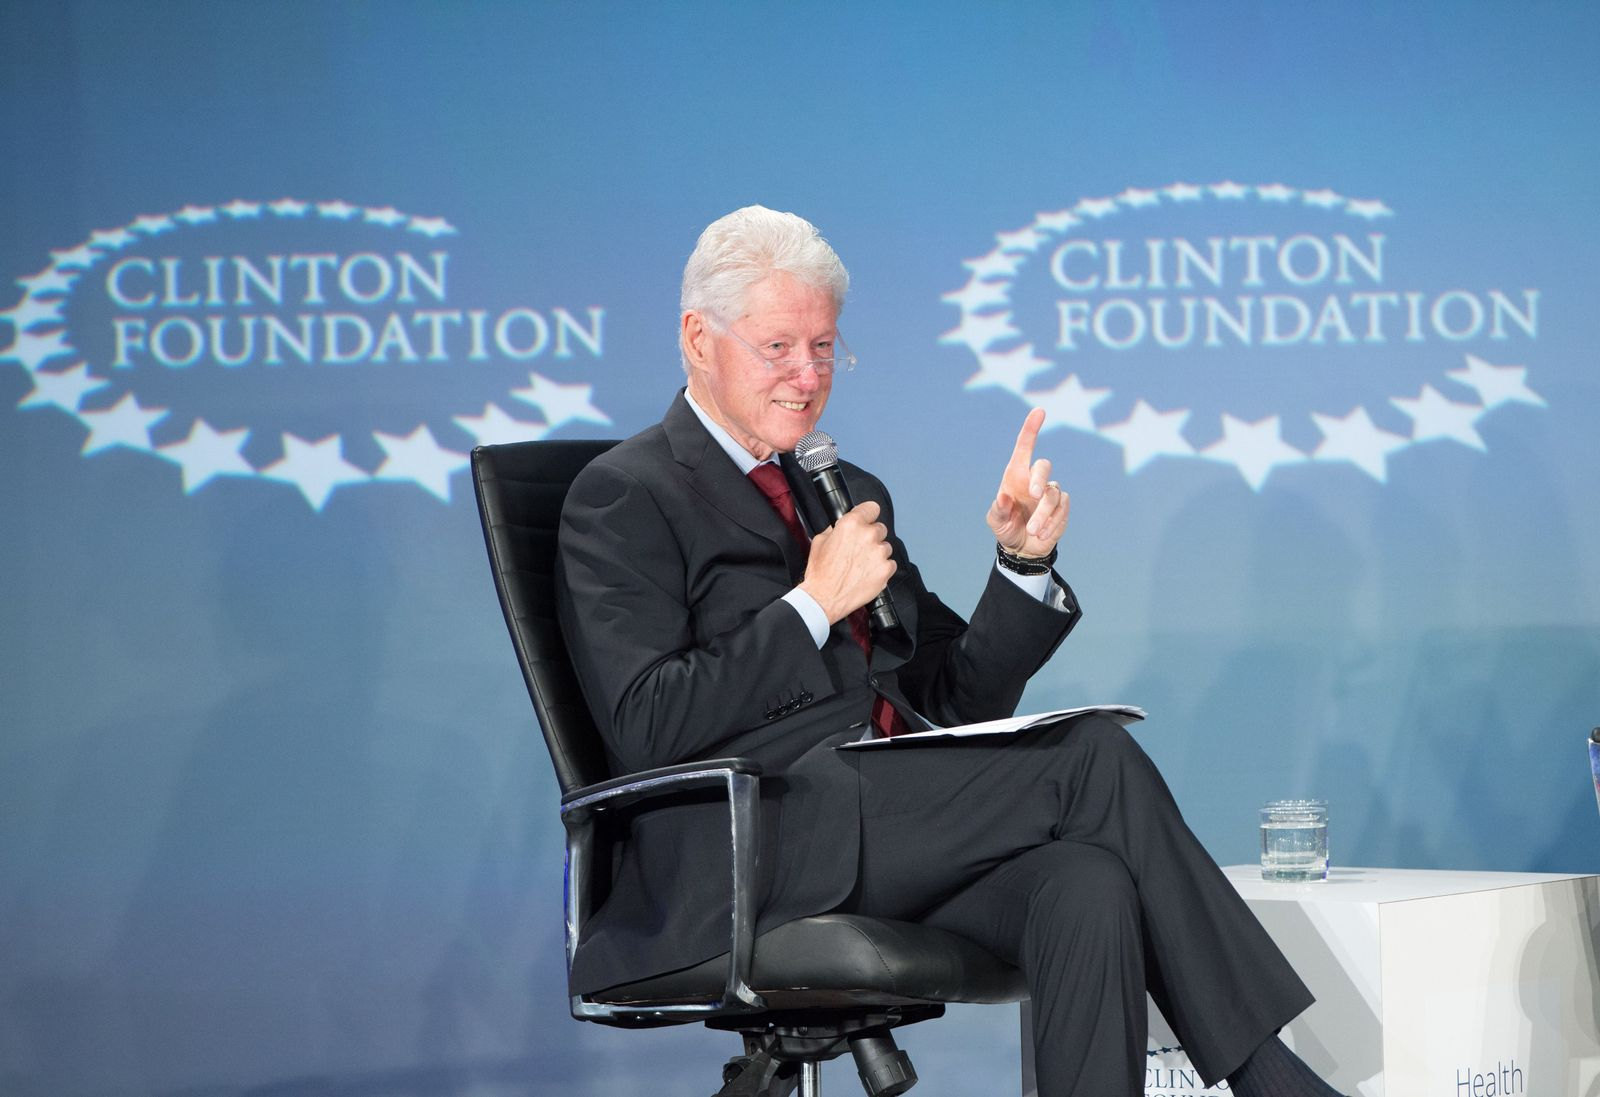 The Clinton Foundation/ Bill Clinton